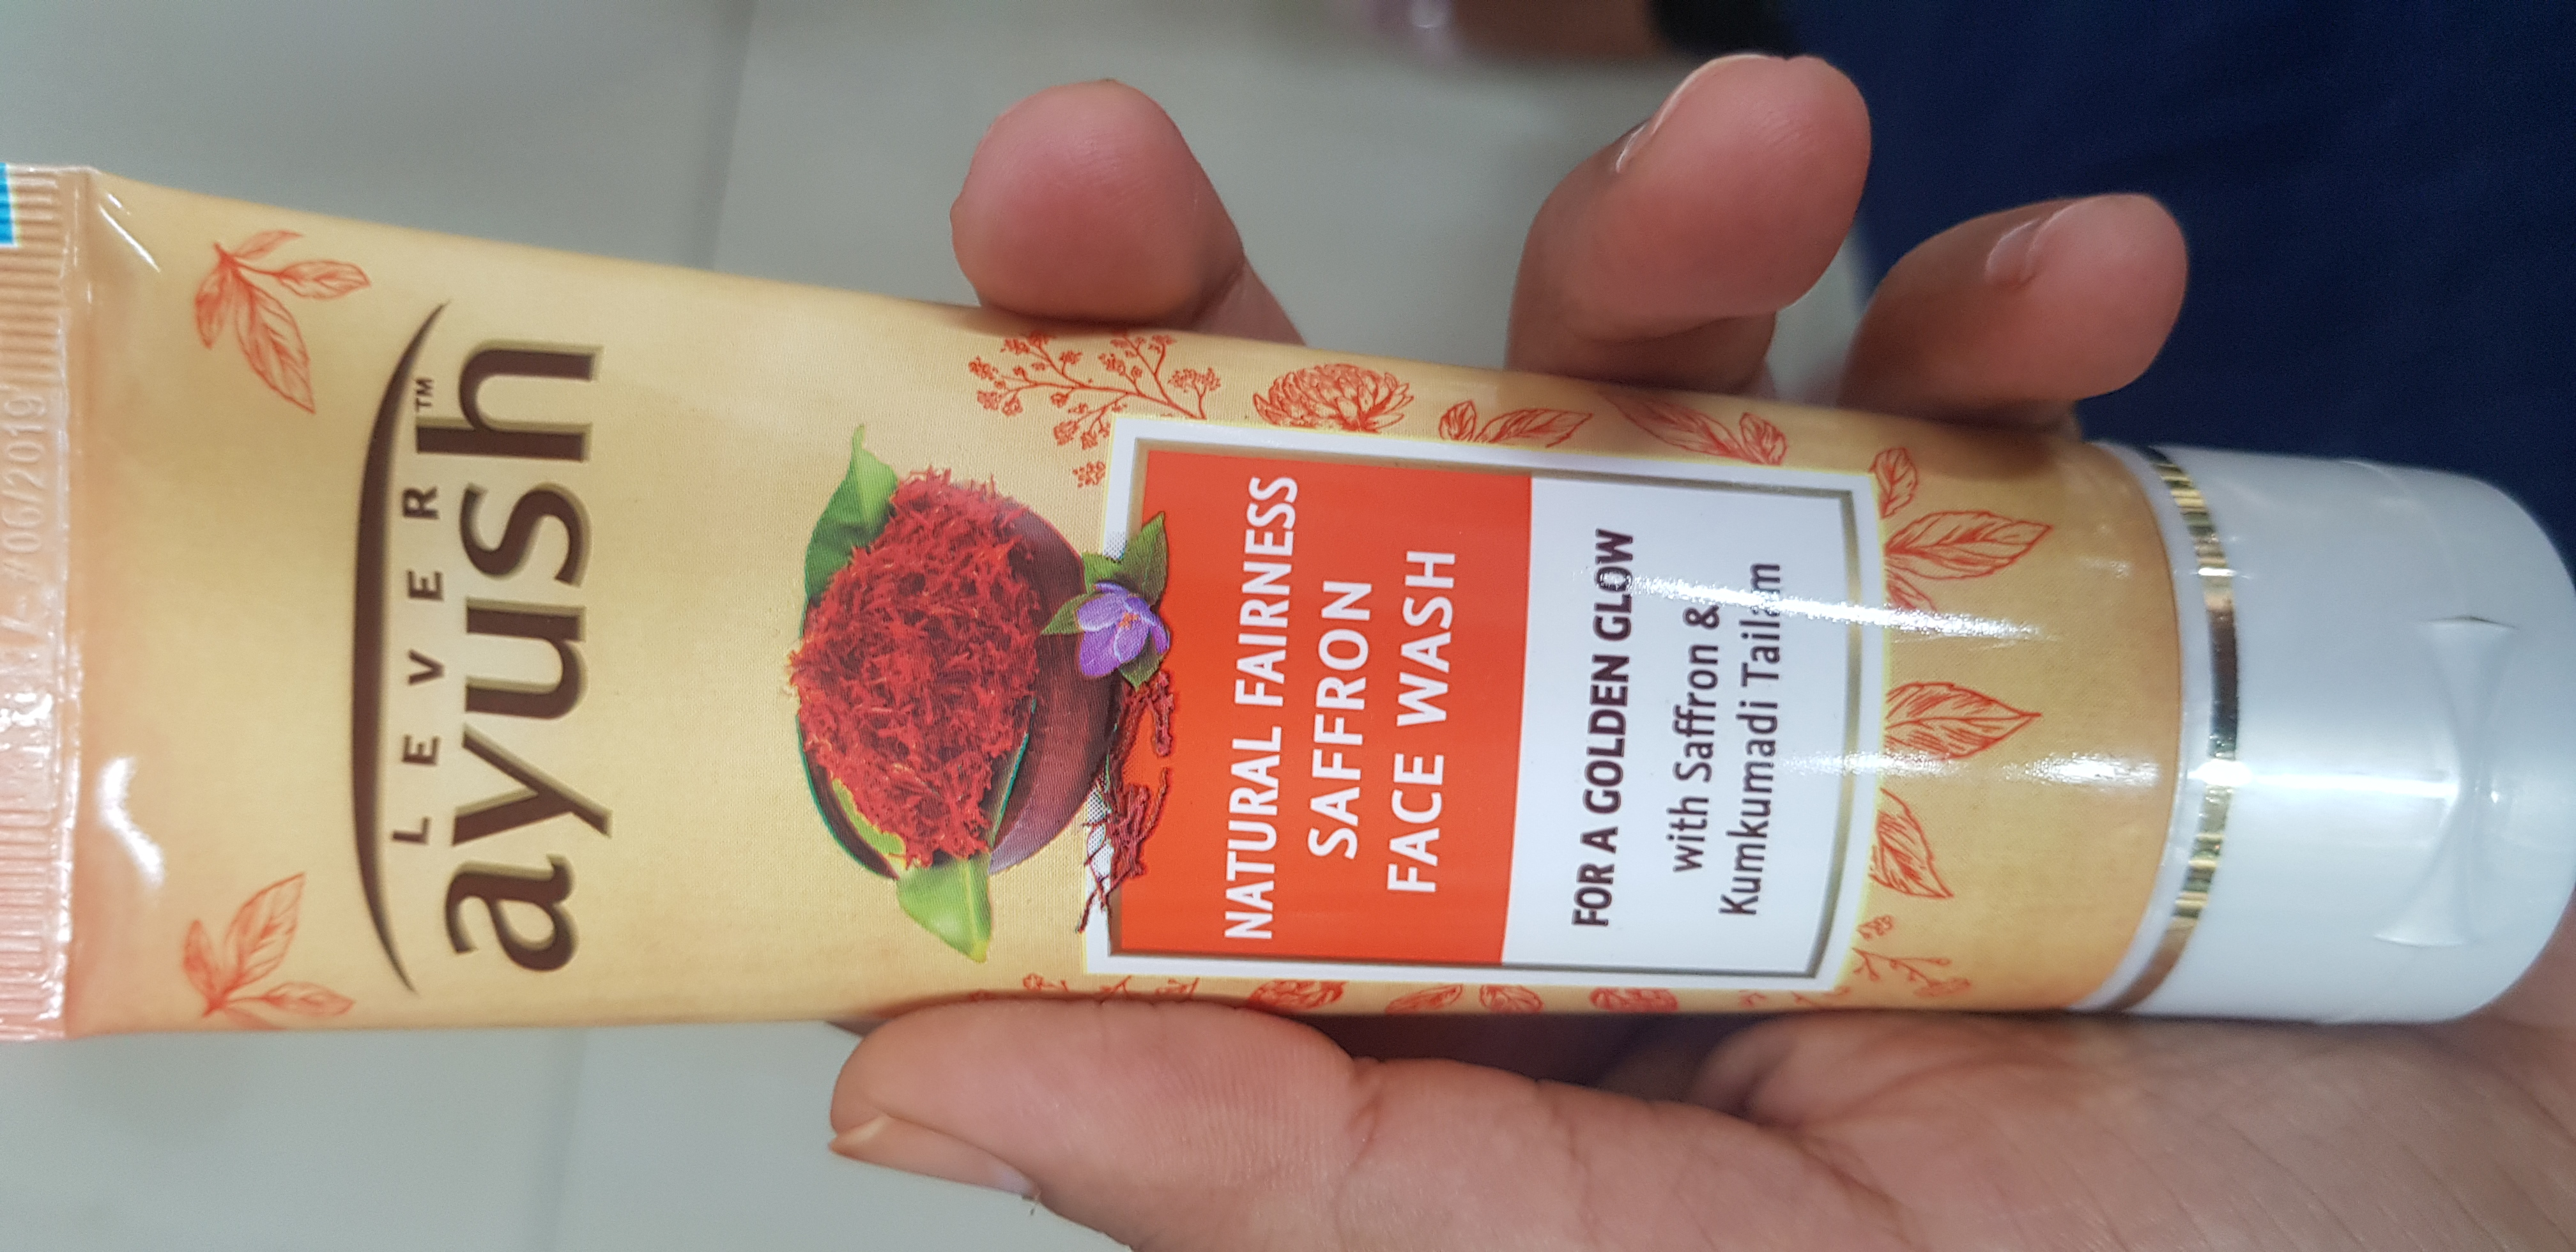 Lever Ayush Natural Fairness Saffron Face Wash -Goodness of Saffron-By avyuktha